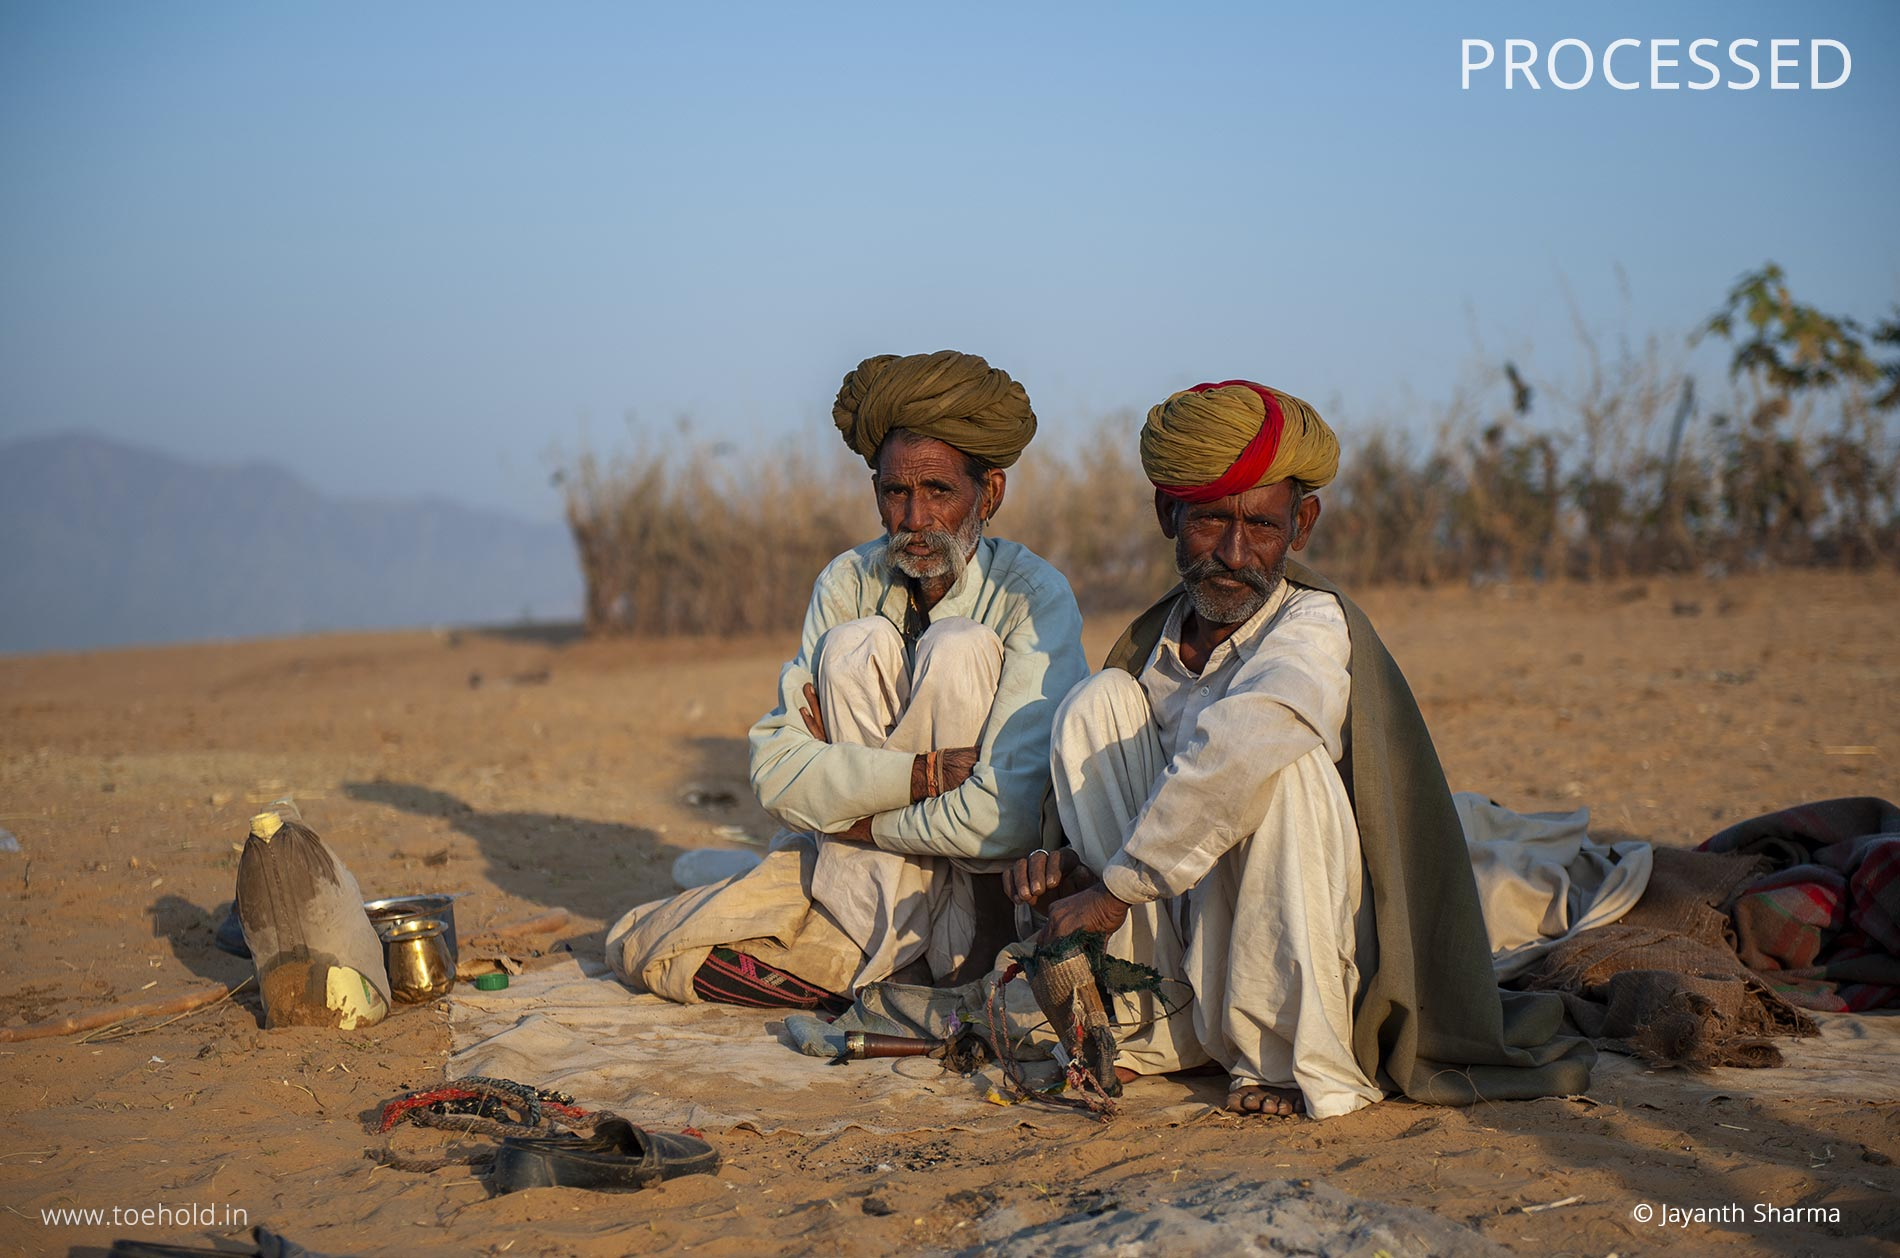 Pushkar farmers processed